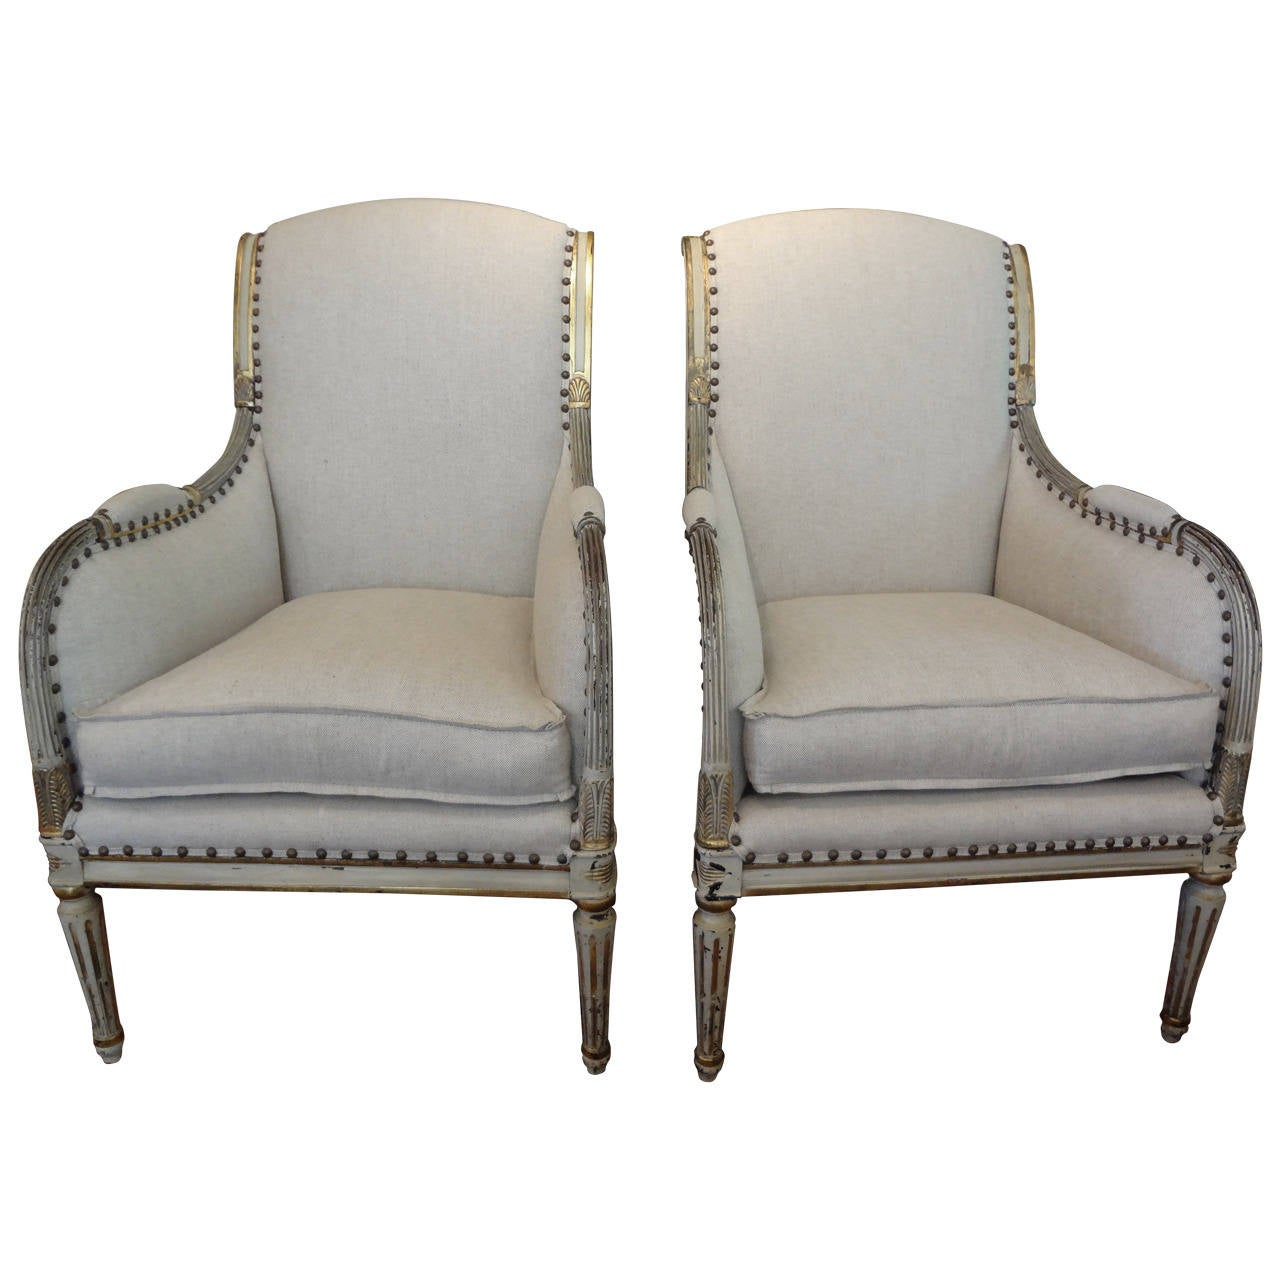 french canopy chair clearance beach chairs pair of 19th century swedish gustavian style bergeres at